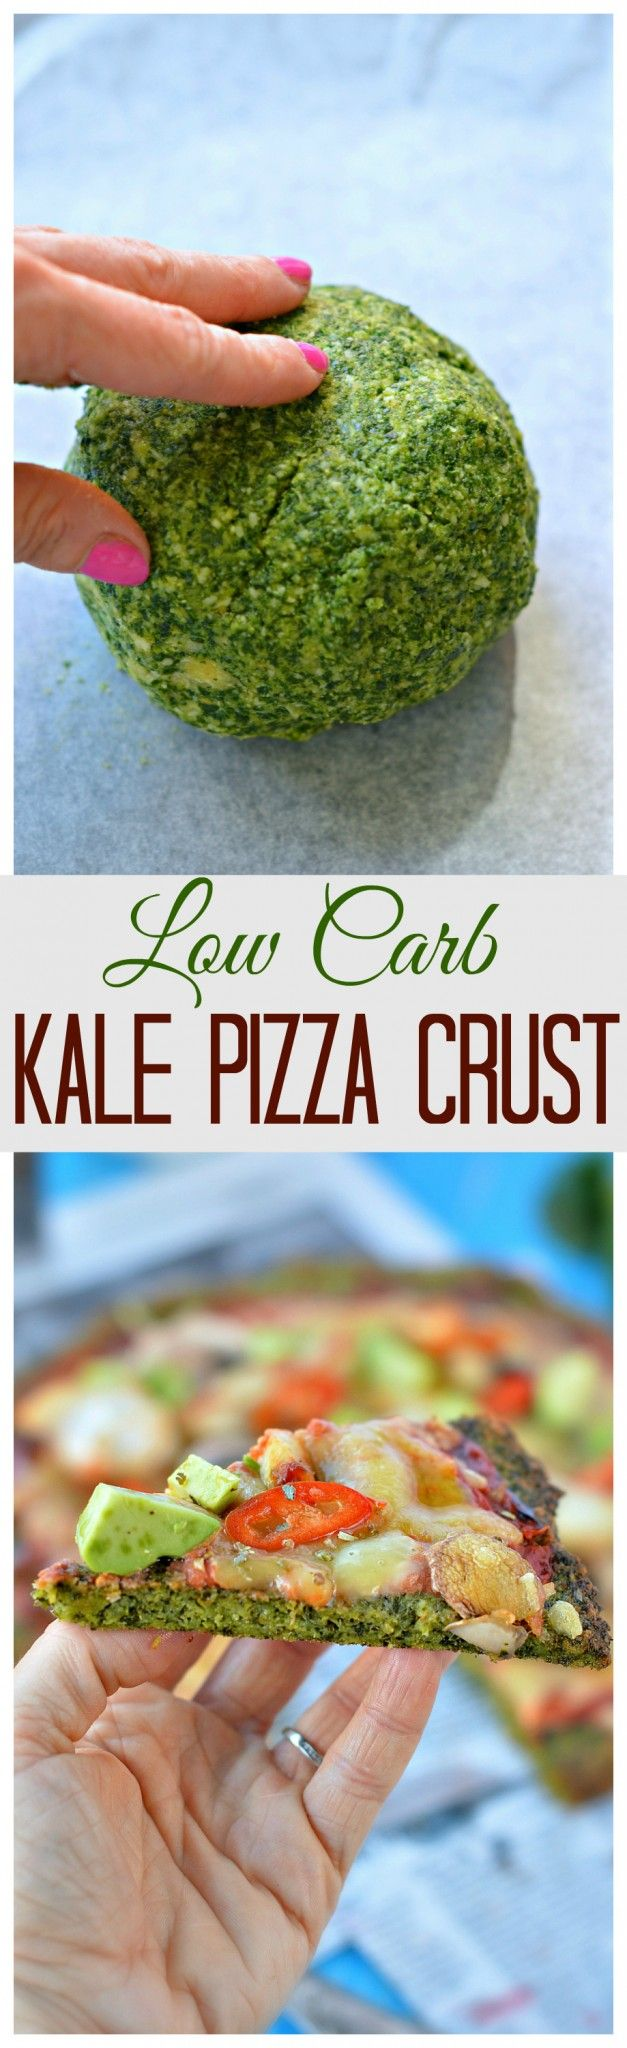 low carb pizza crust with kale | healthy recipe ideas @xhealthyrecipex |